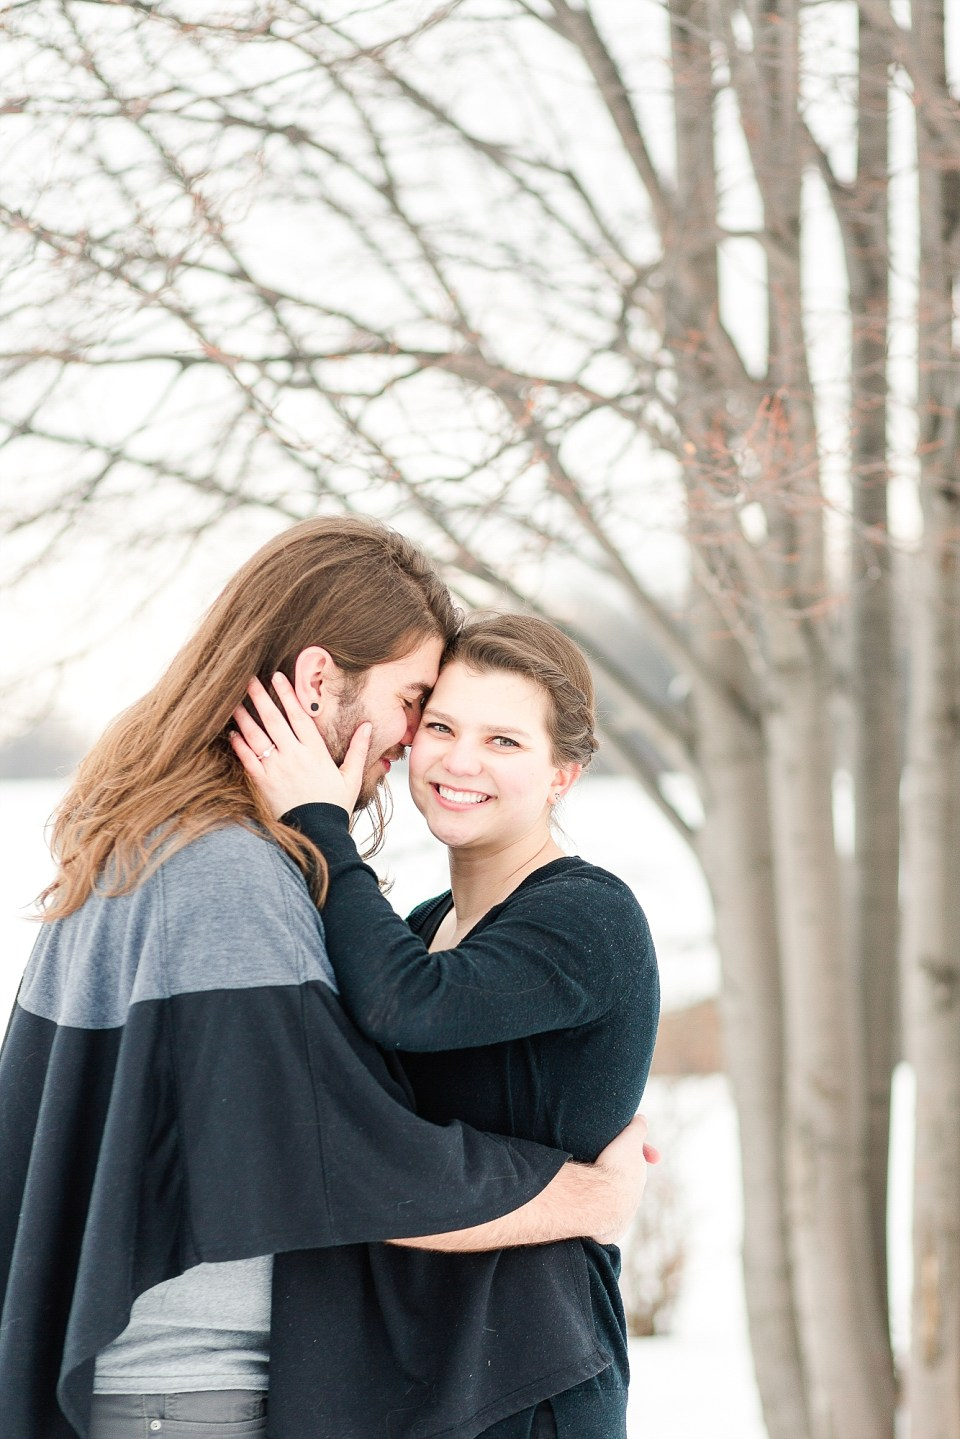 Moorhead engagement session in snowy Johnson Park